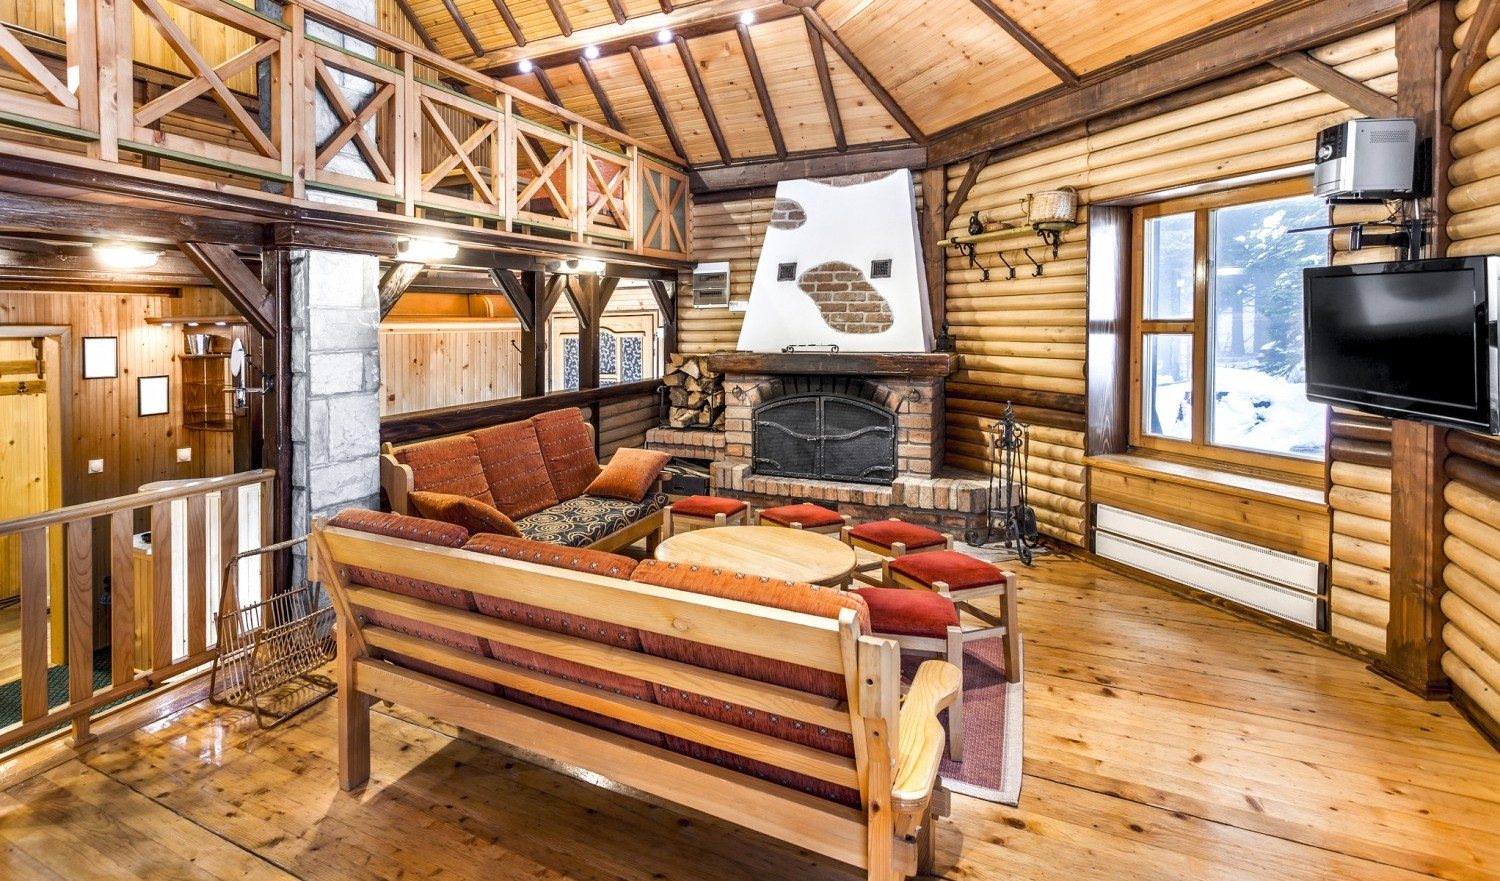 Traditional wooden interior with table and fixtures - mountain resort